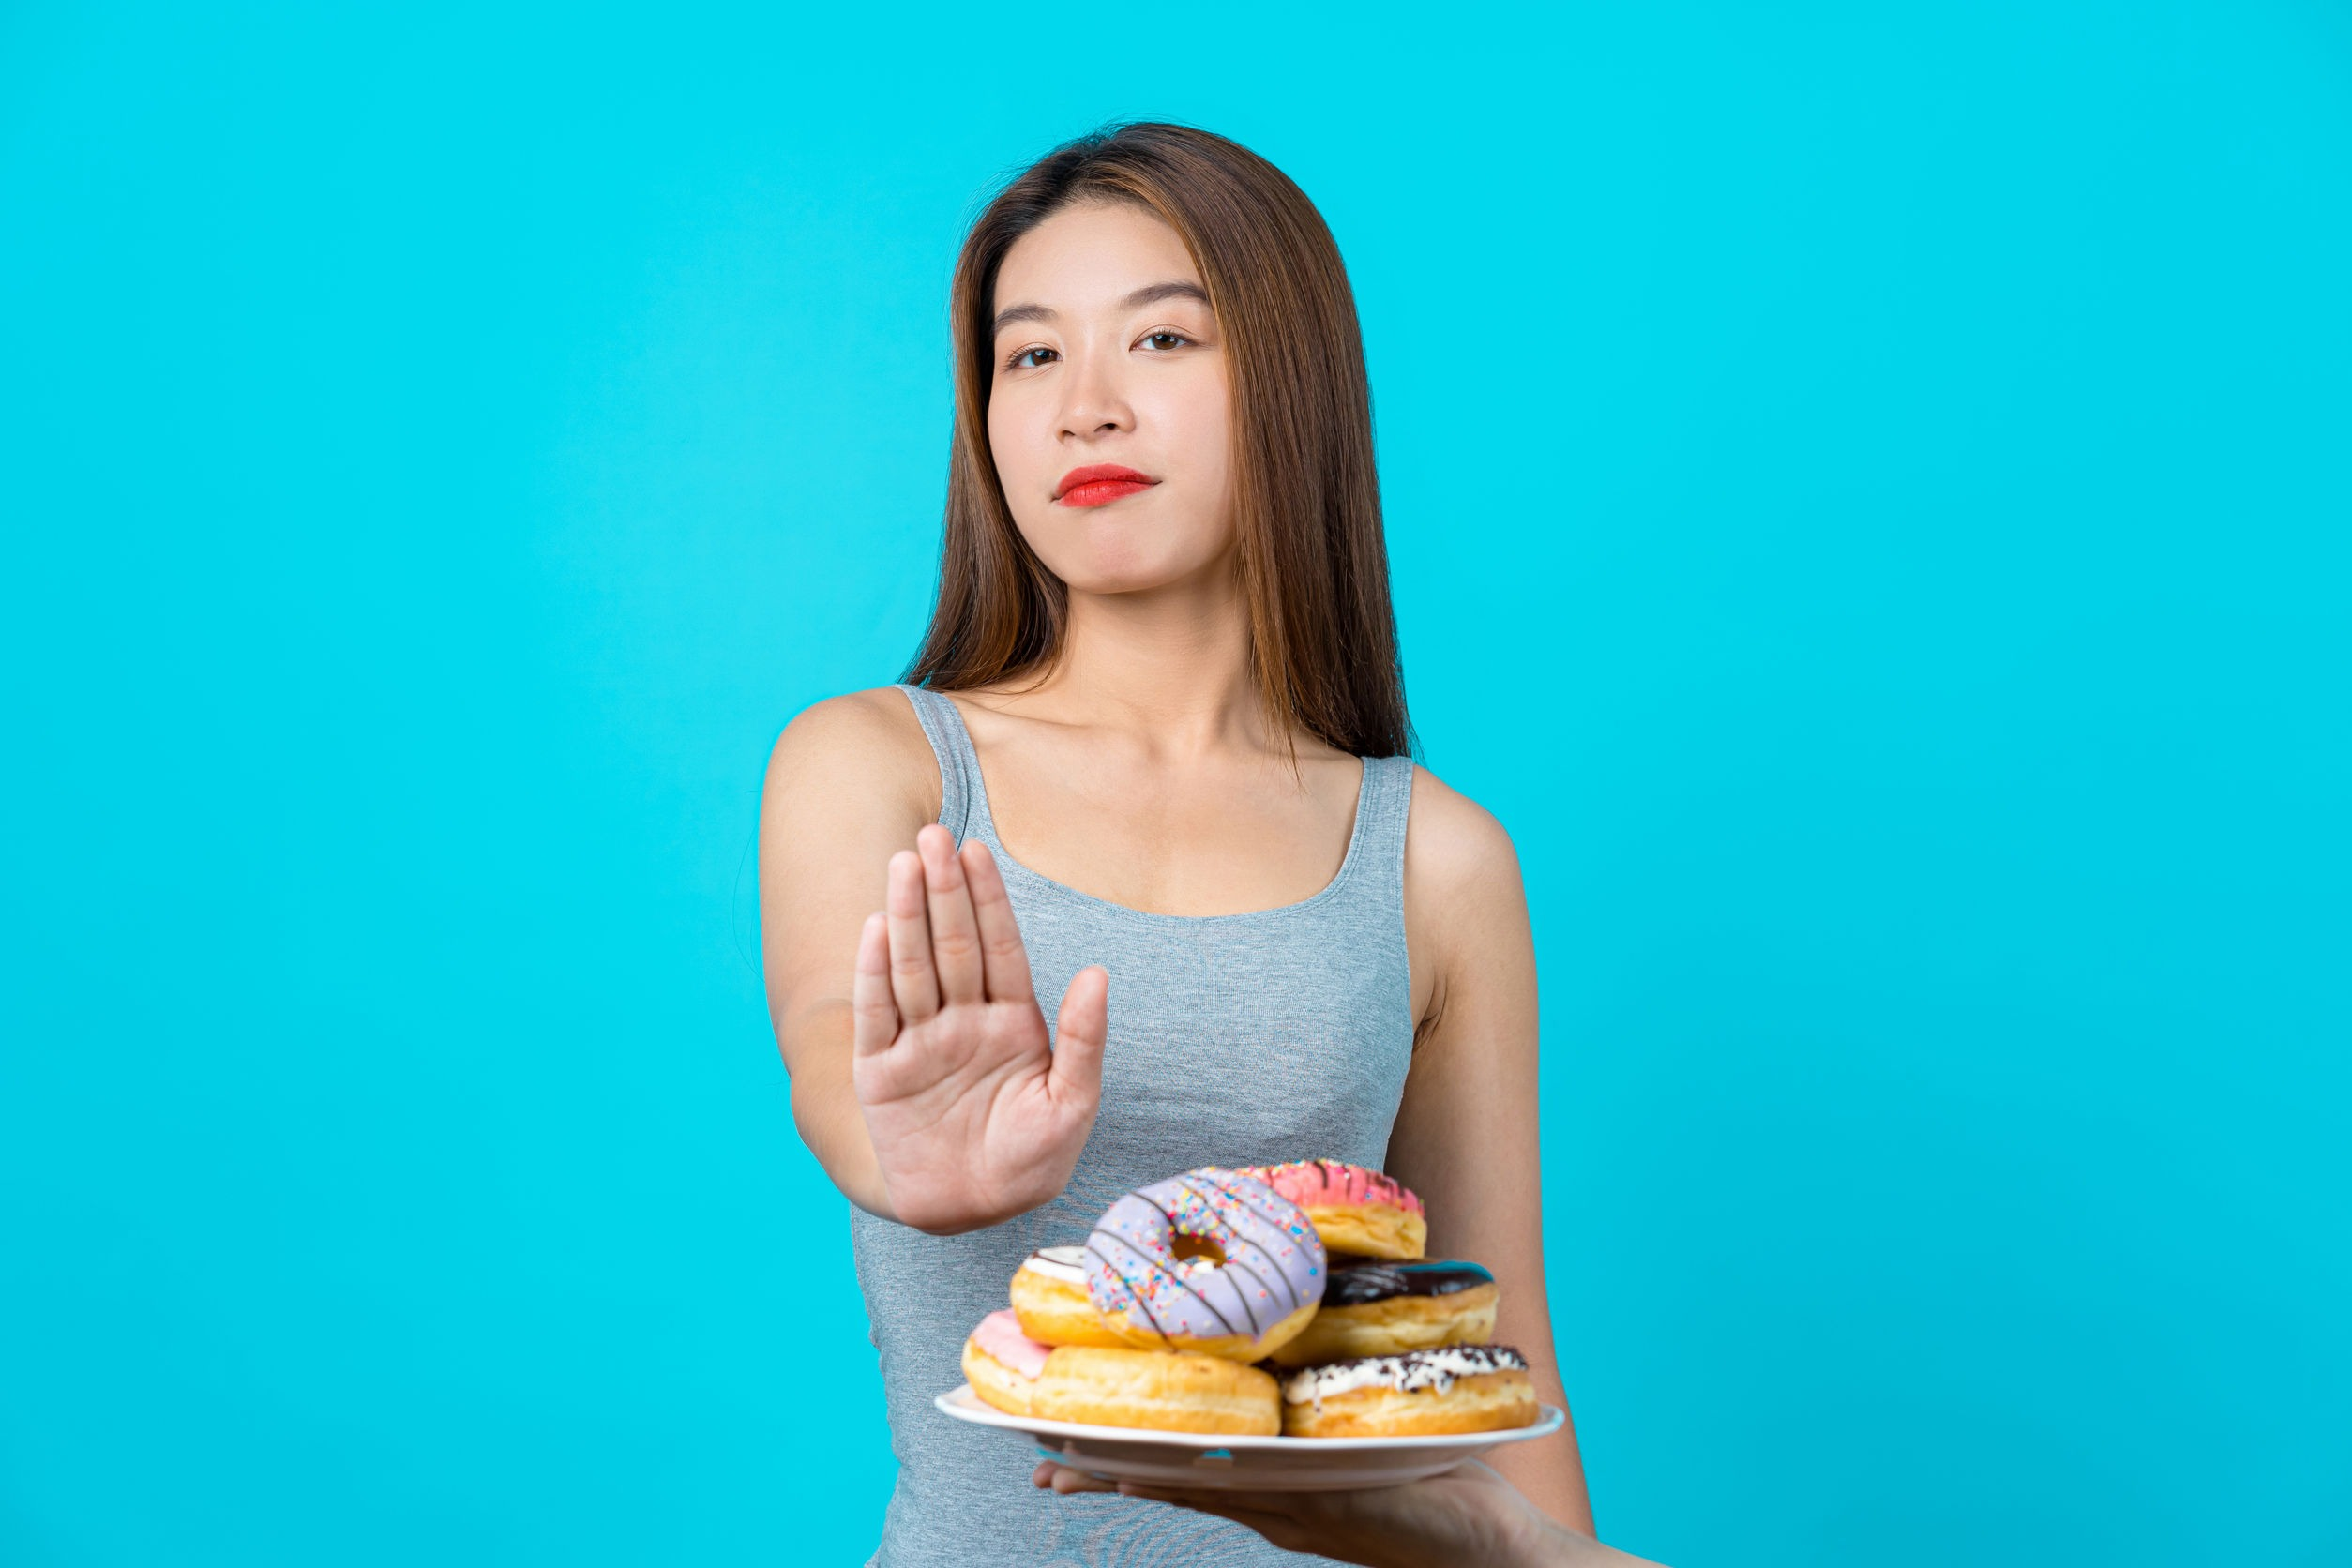 Woman on a sucrose intolerance diet putting her hand out to say no to donuts. She is on a low sucrose diet